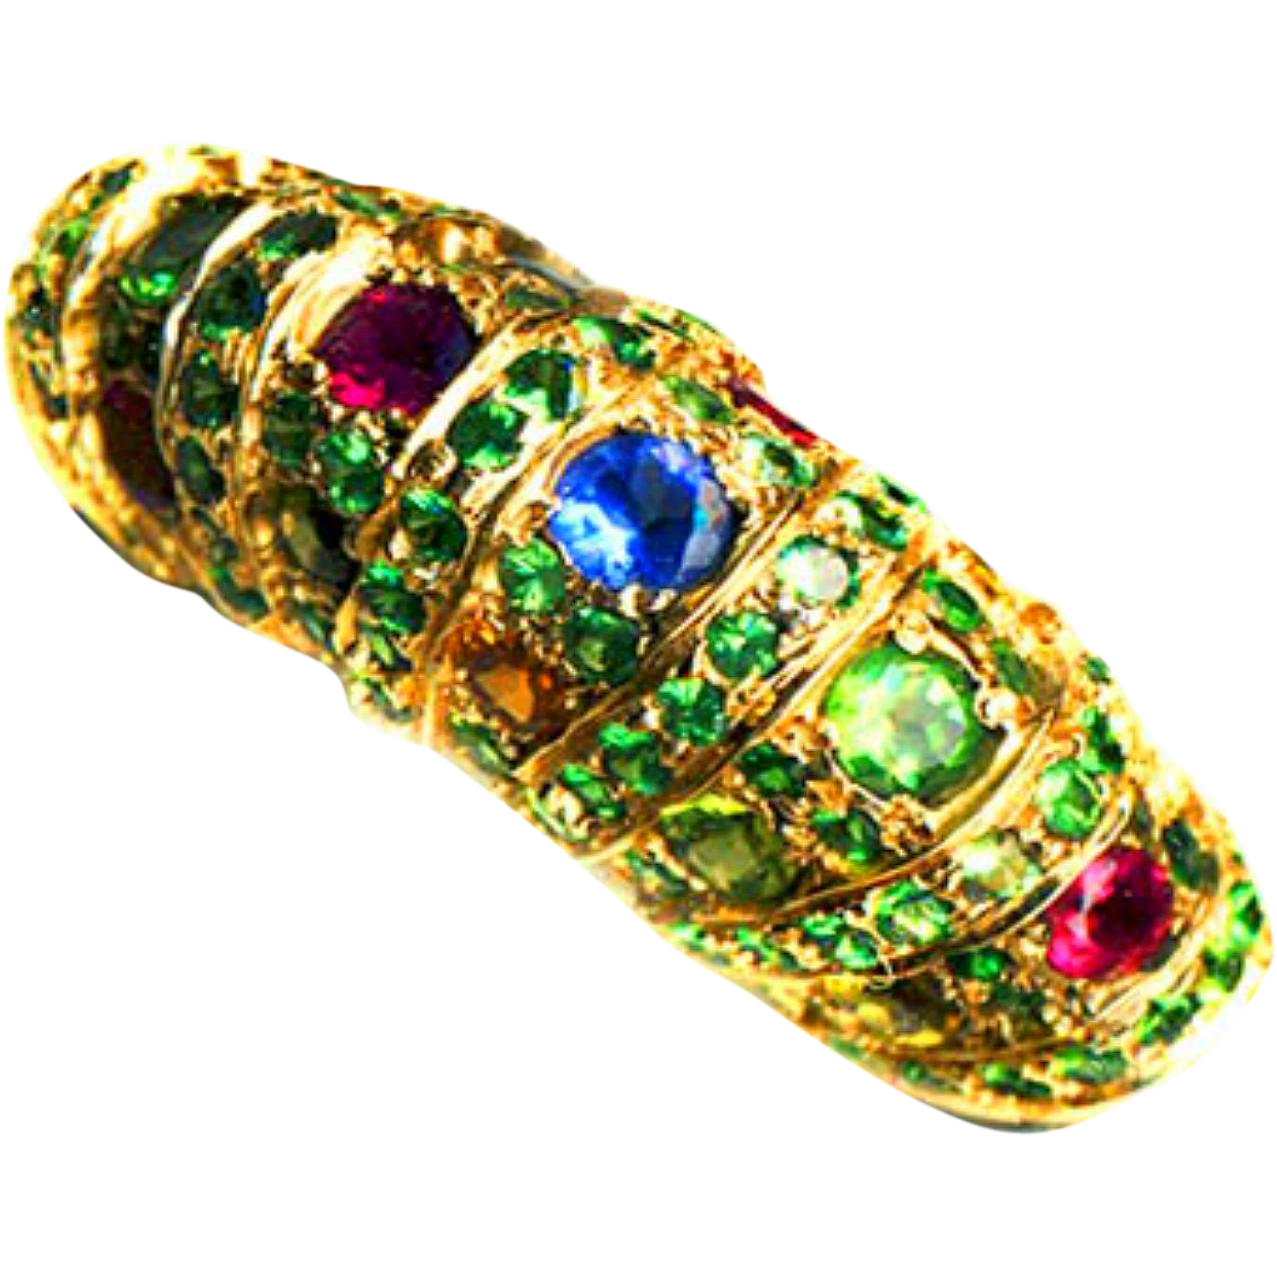 Ring--Large 18 Karat Gold Barrel Euroshank, Tsavorite Garnets, and Multihued Tourmalines